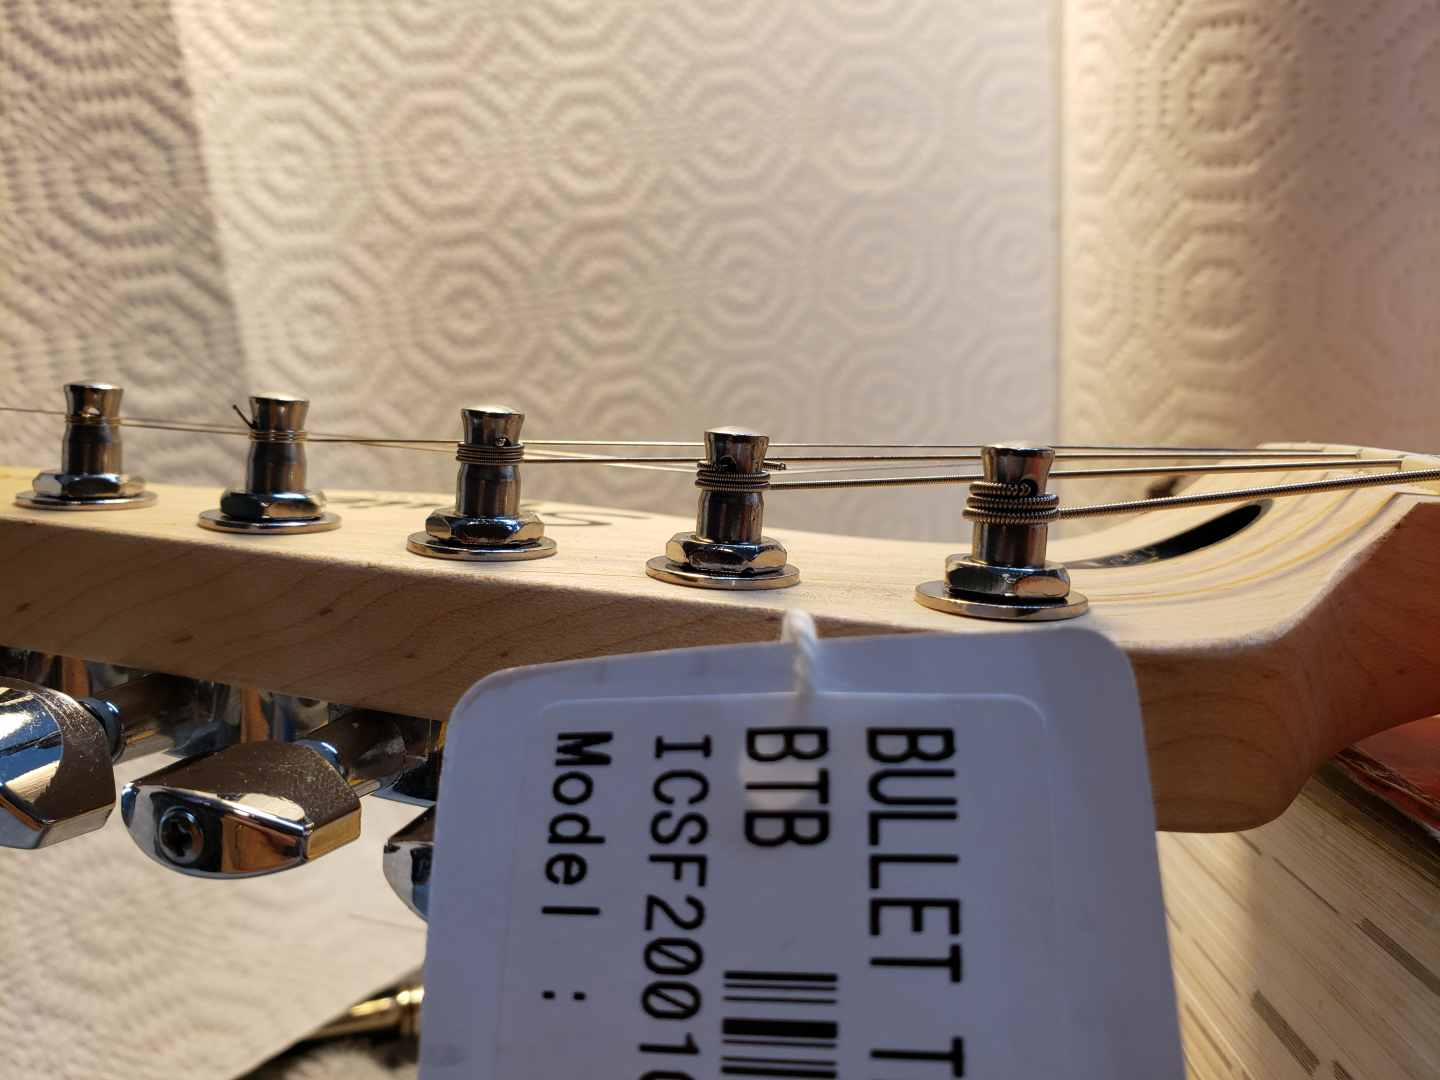 Fixing Squier Telecaster problems